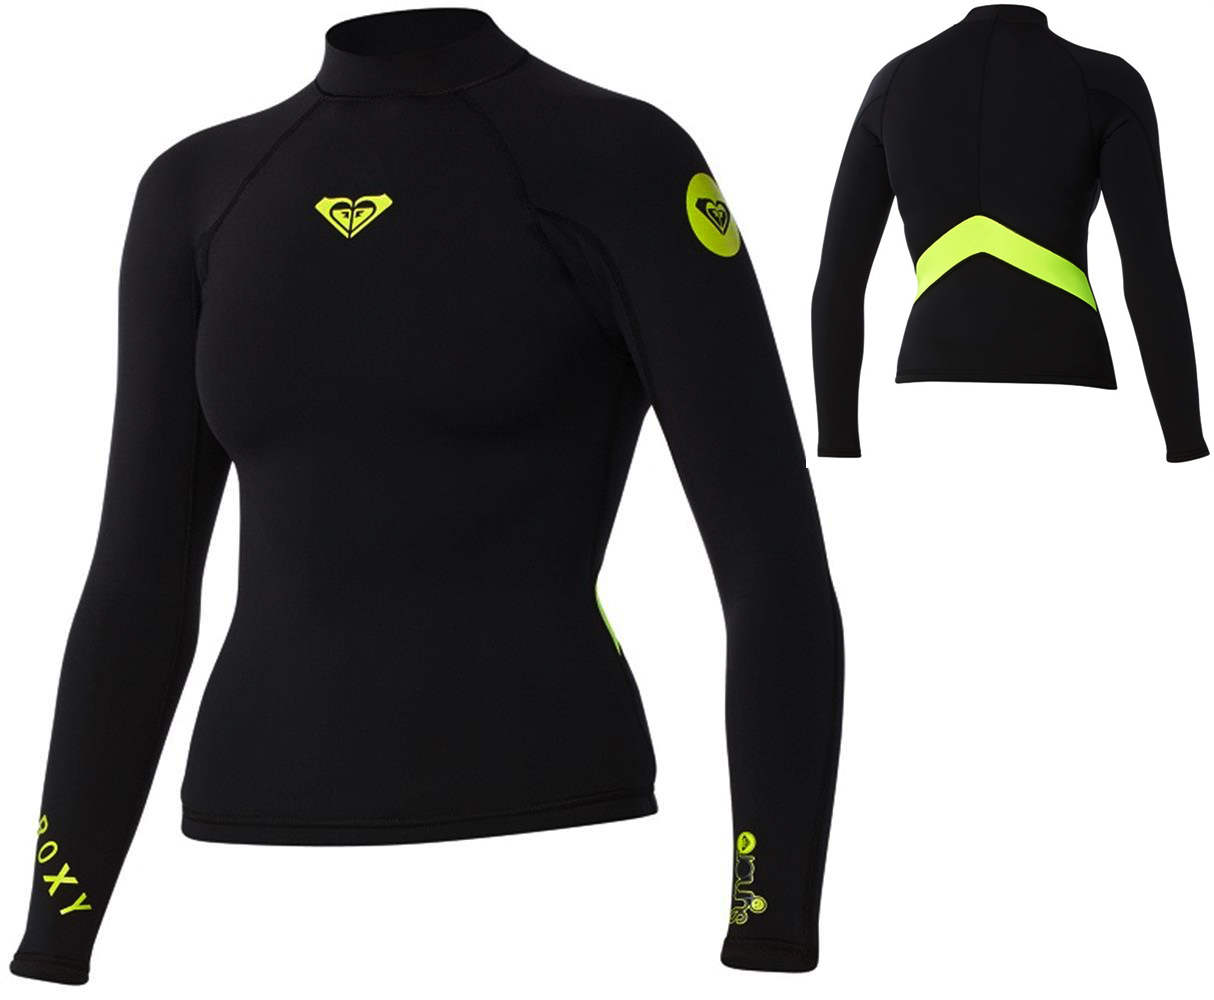 Roxy Syncro Neoprene Jacket 1.5mm Long Sleeve - LIMITED EDITION